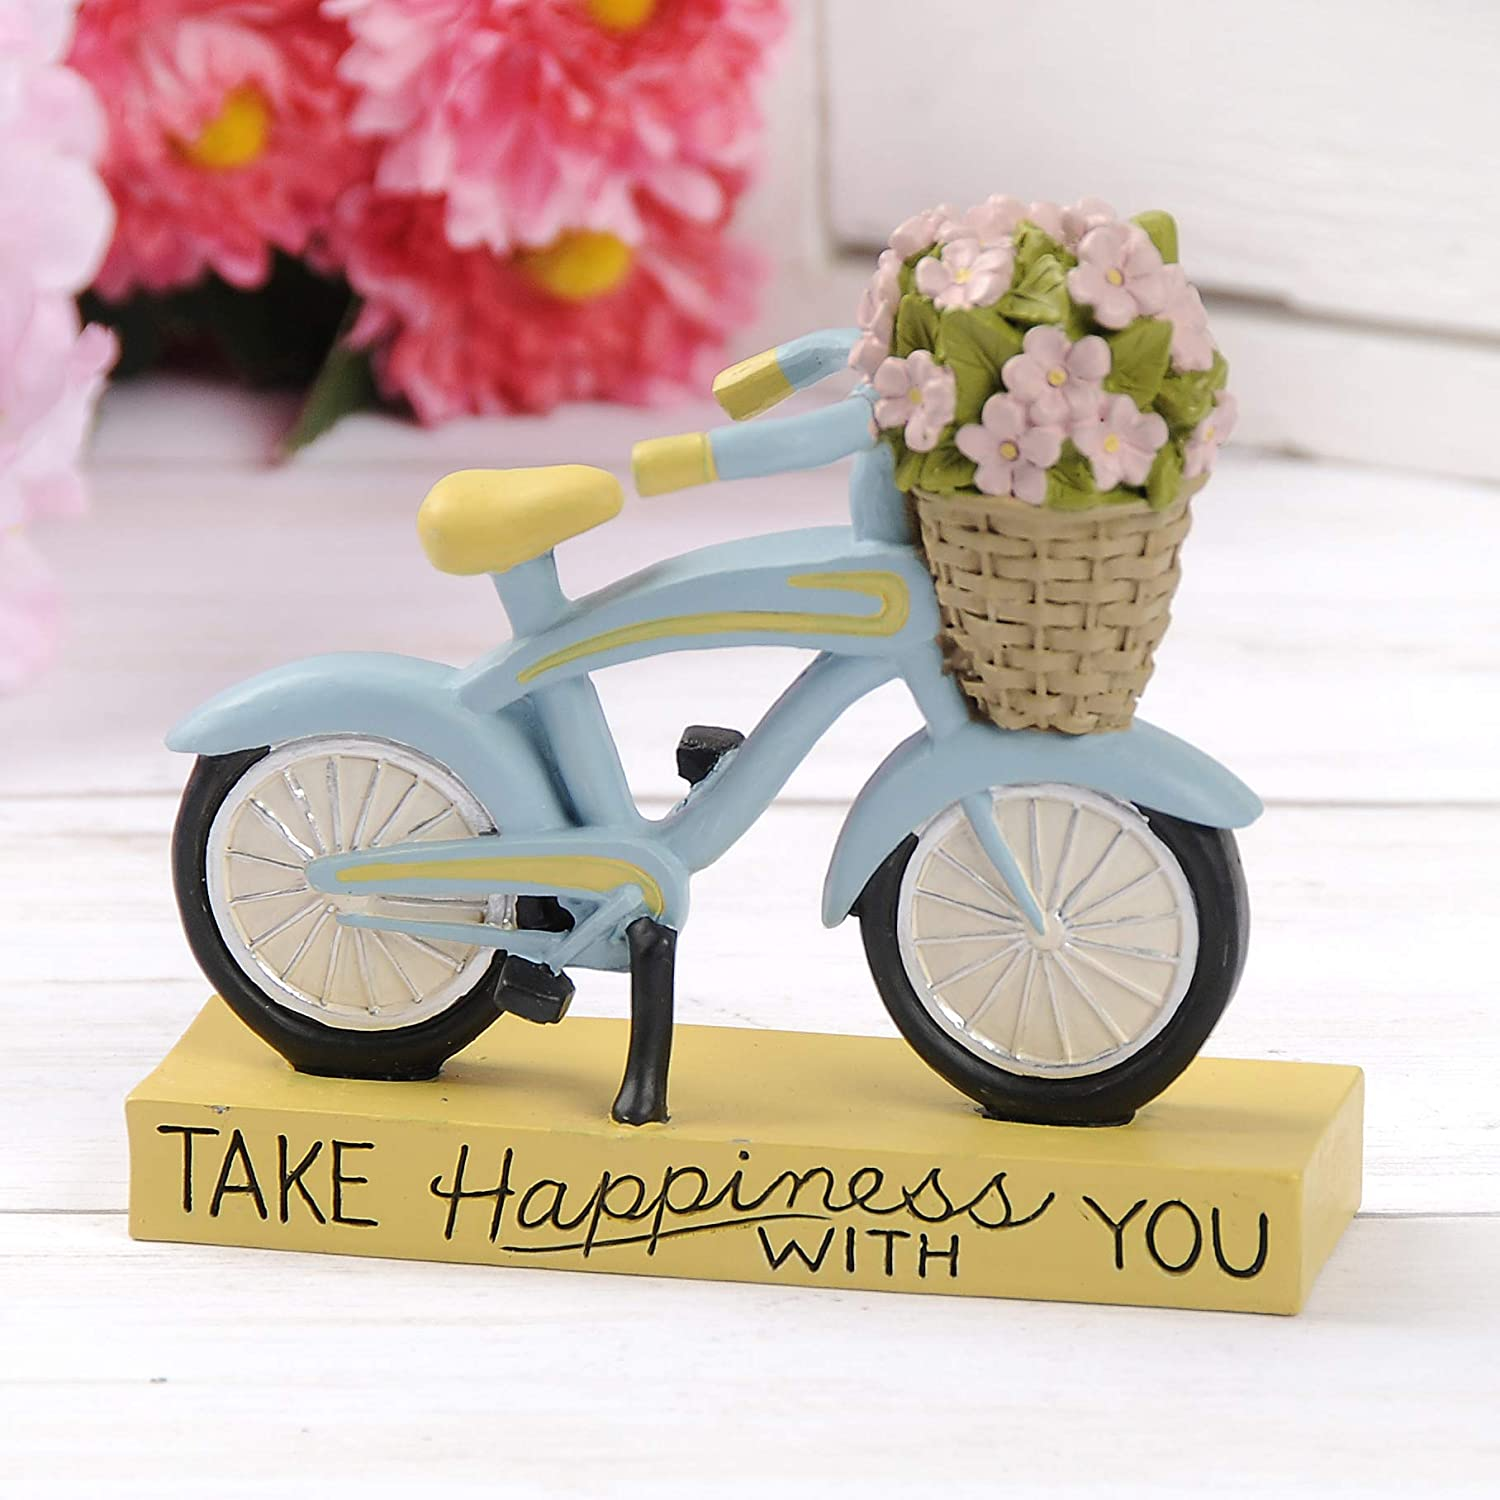 Blossom Bucket 191-12213 TAKE Happiness with You Bike, Multi-Colored